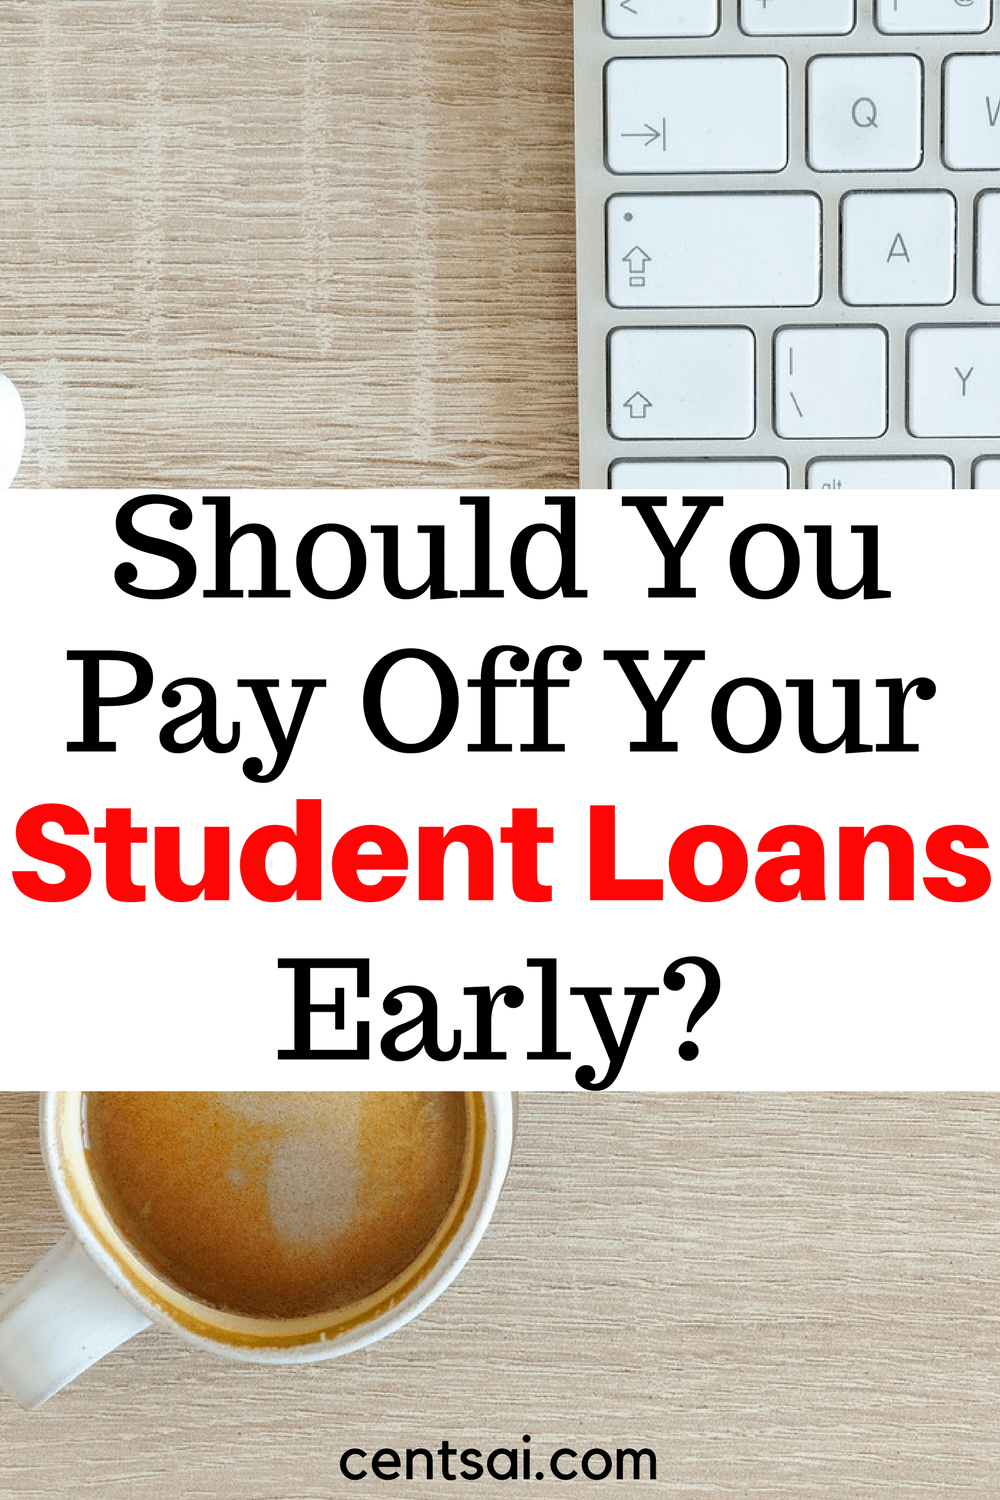 It may seem like an easy choice at first, but there are some major pros and cons to paying off your student loans early.